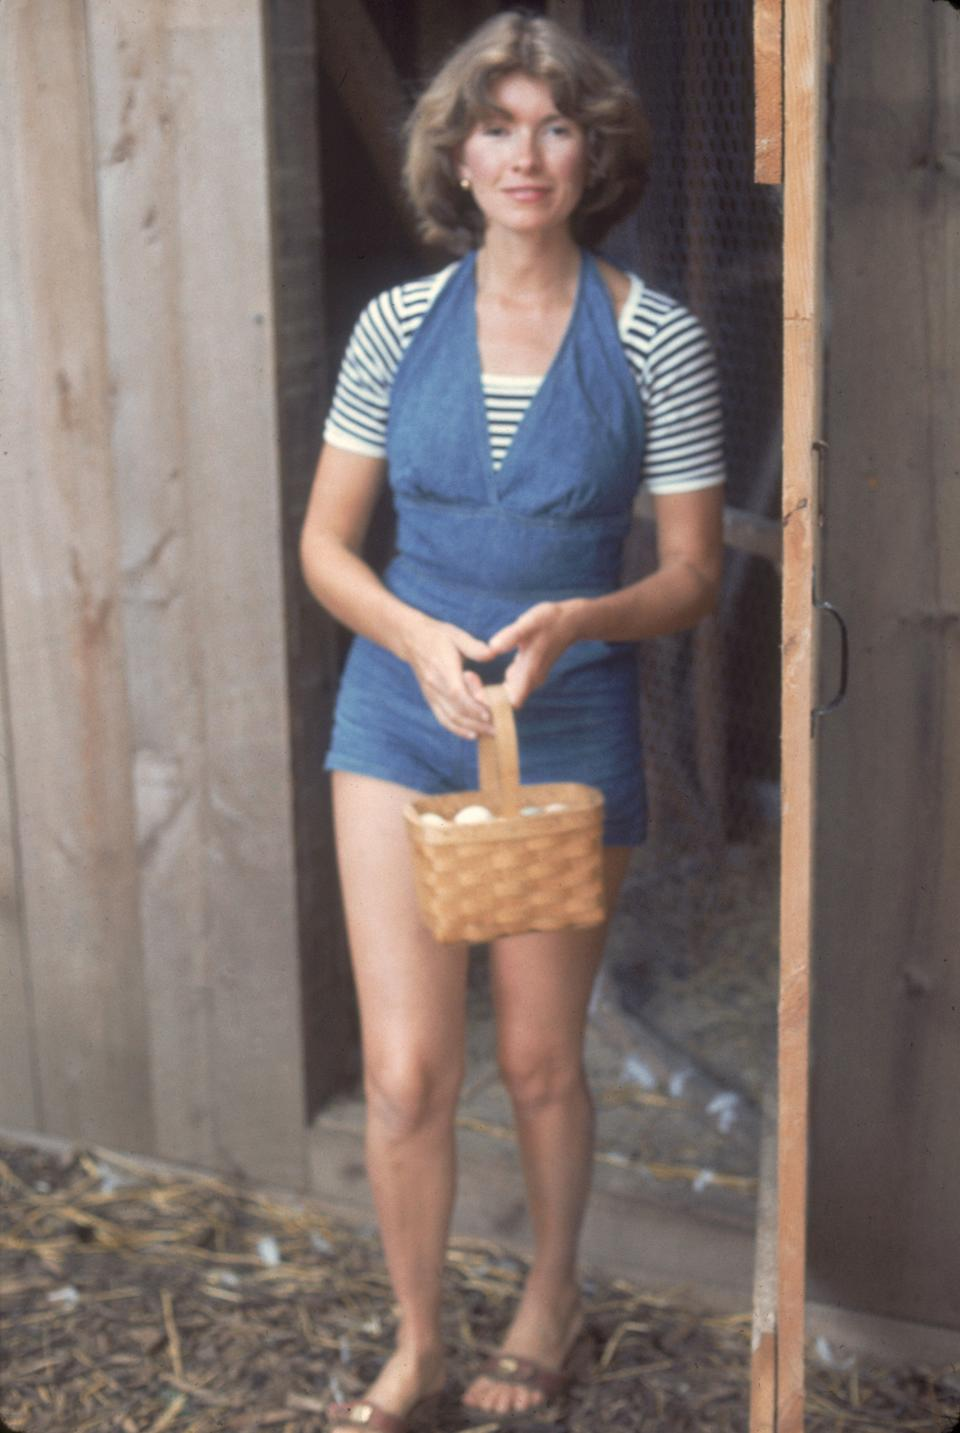 Stewart outside a chicken coop holding a basket of eggs in August 1976.